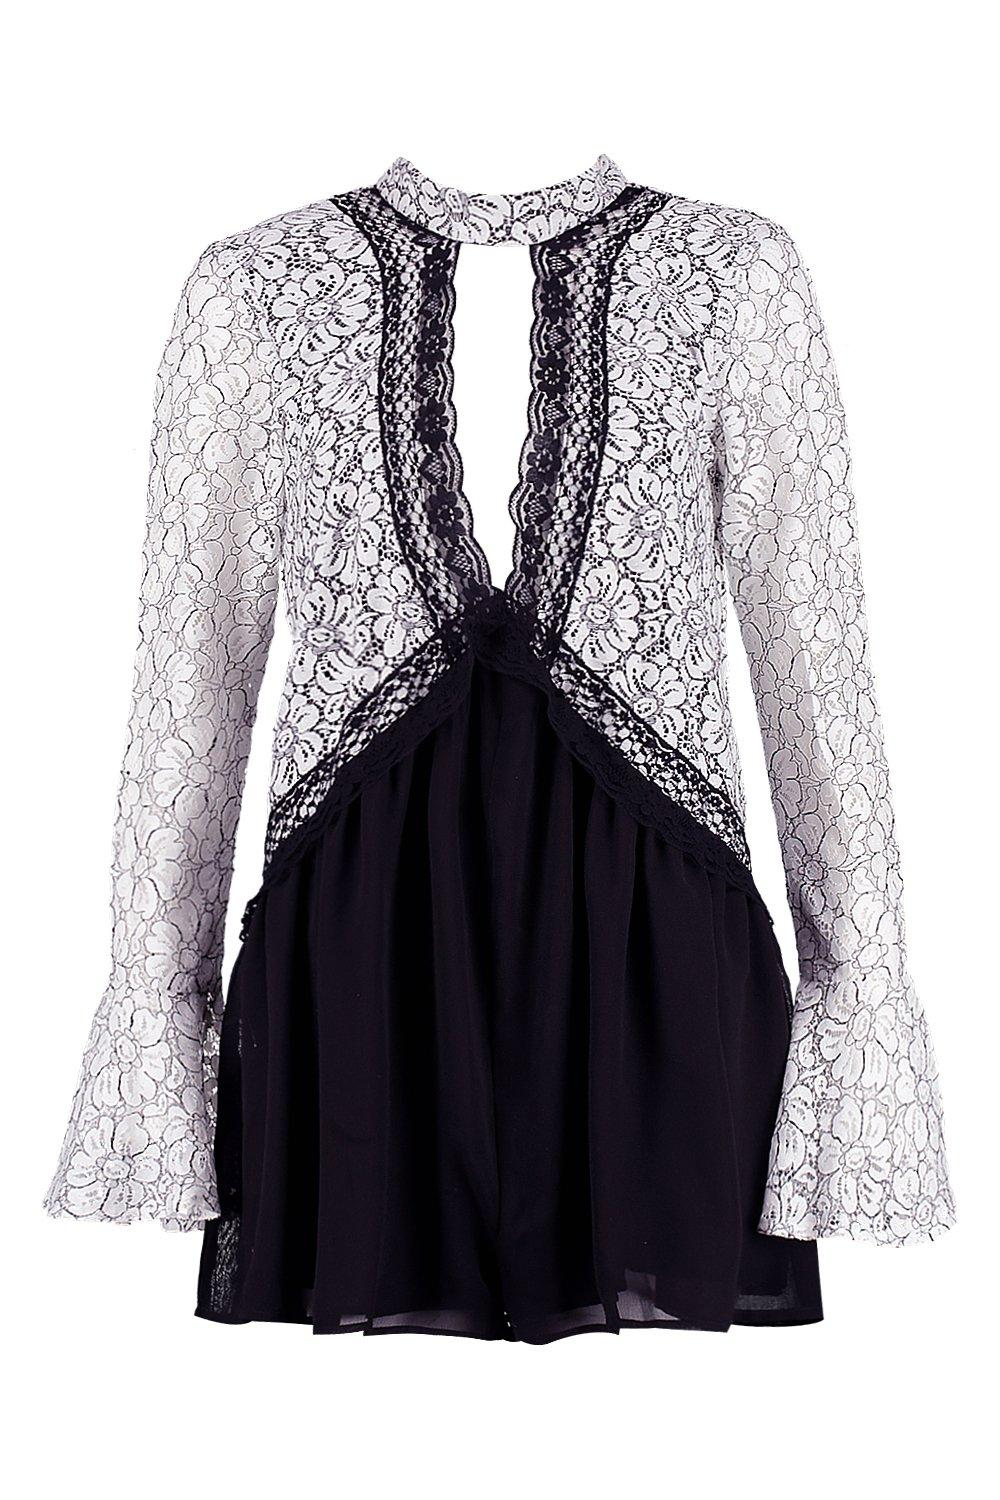 fe79875f1f0 Boohoo Womens Lace Choker Style Smock Playsuit in Black size 4